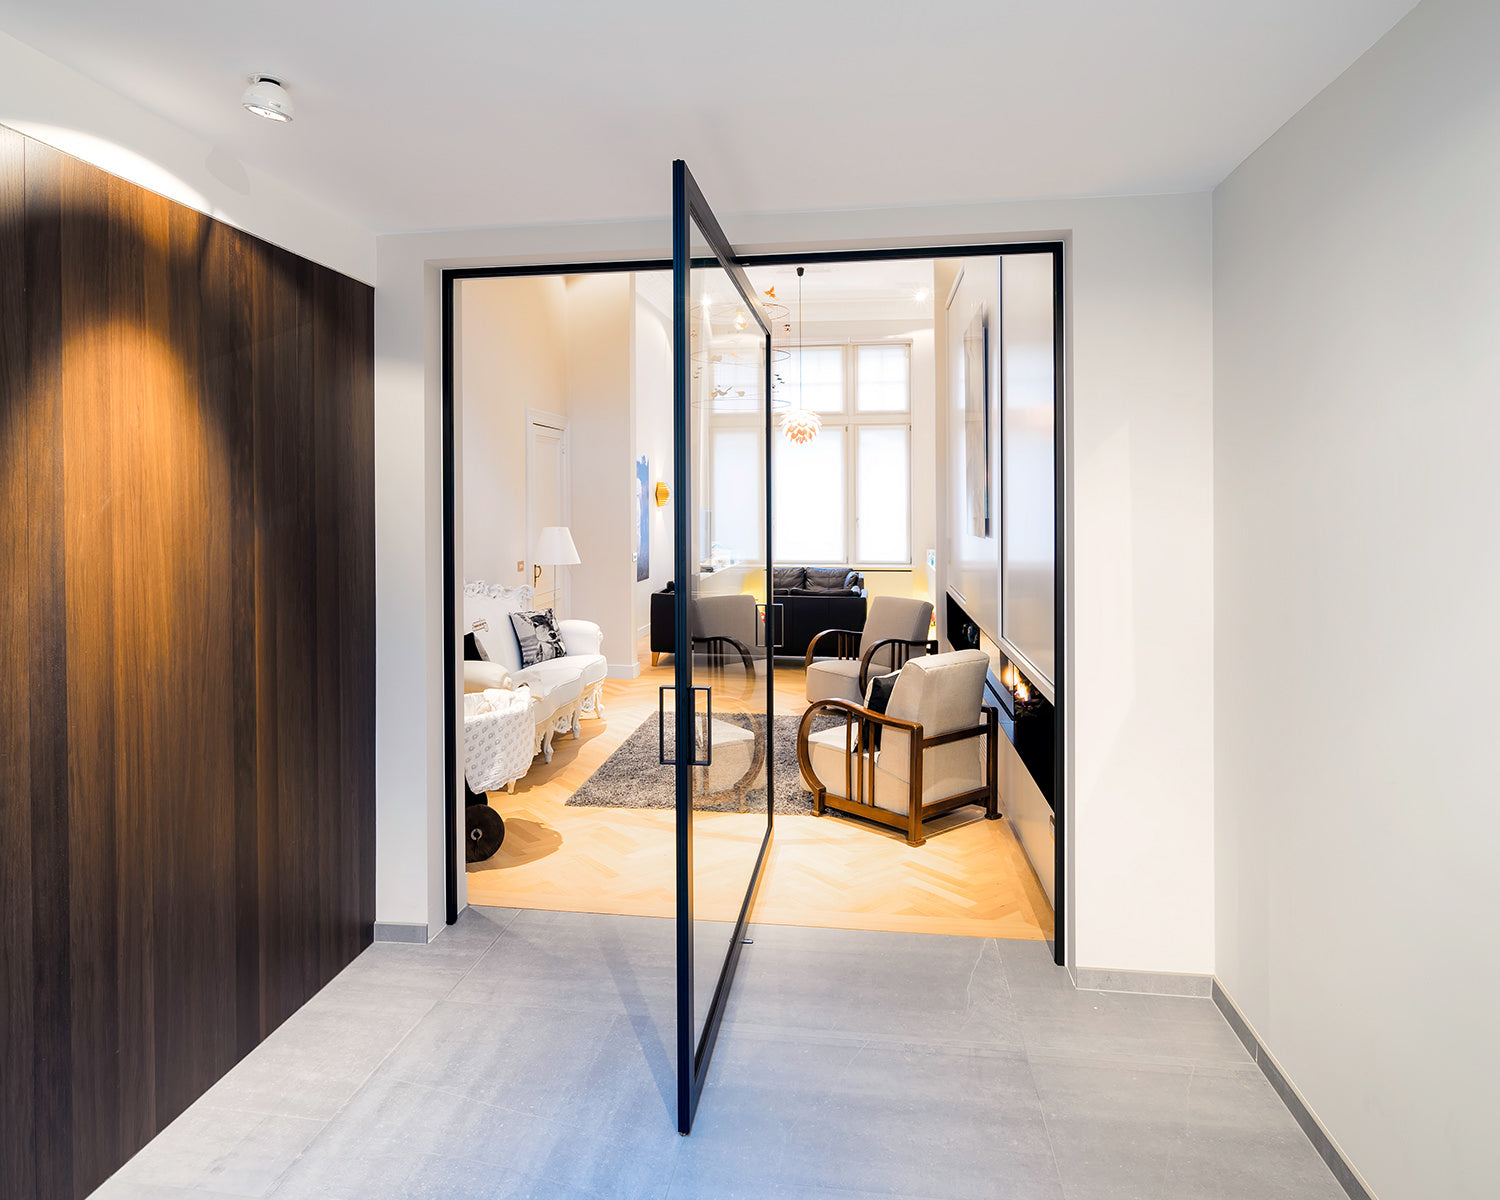 Central axis pivot door with 360° functionality